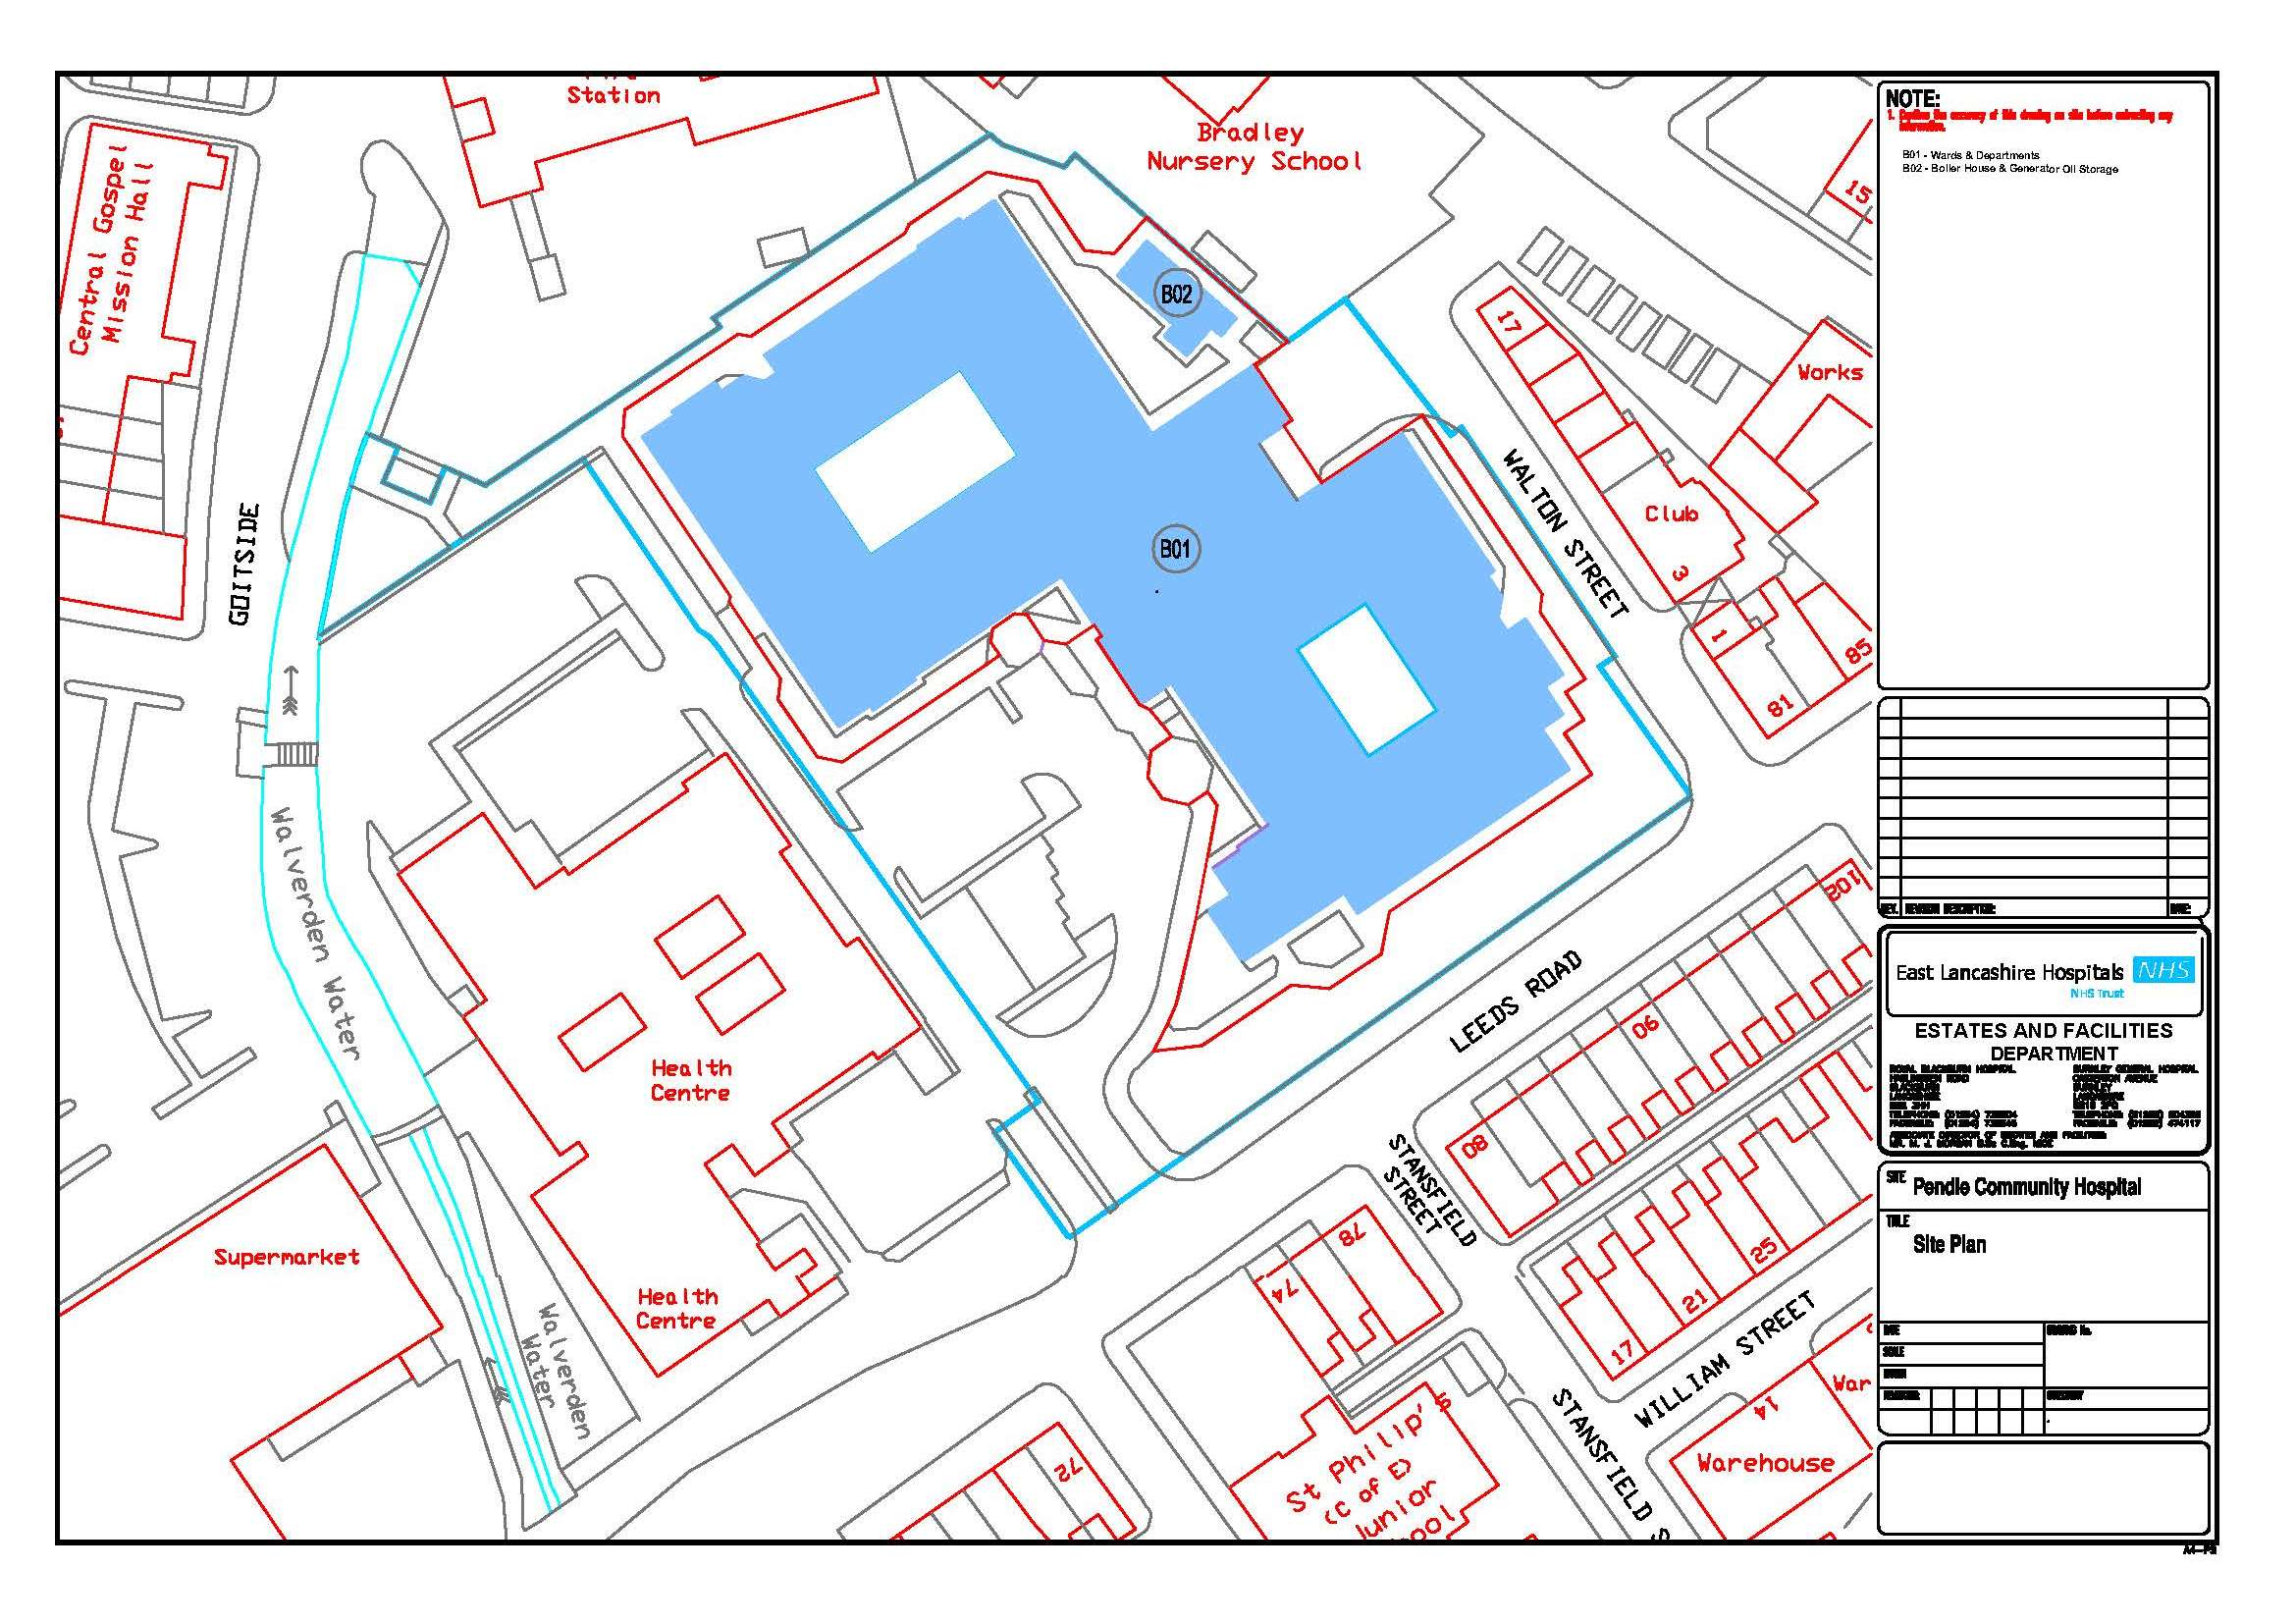 Location Maps :: East Lancashire Hospitals NHS Trust